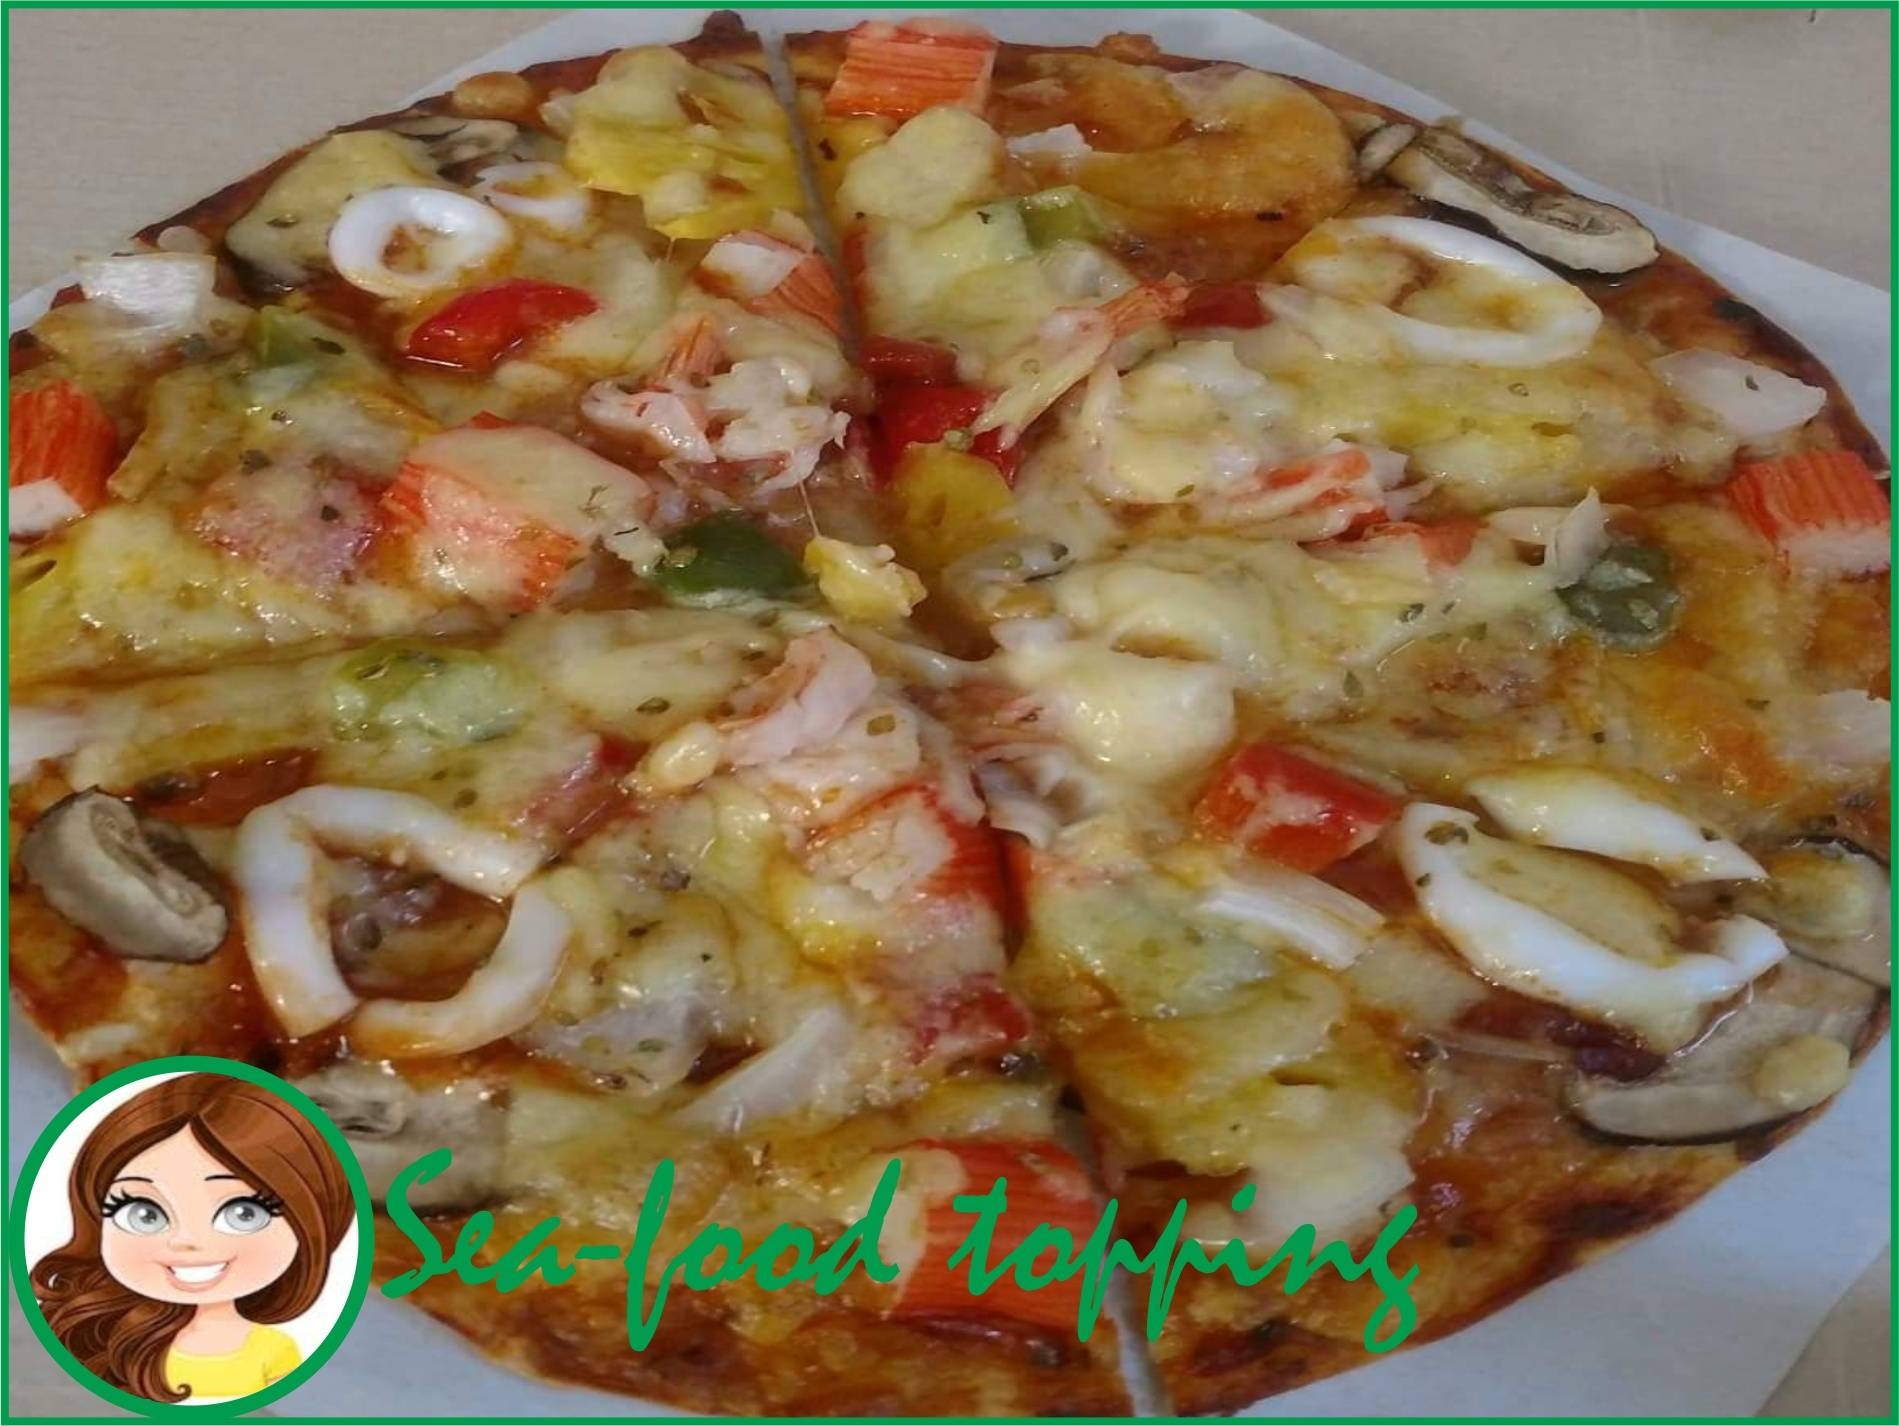 Large sea food pizza with text for Supatta pizza indicating delivery in Hua Hin